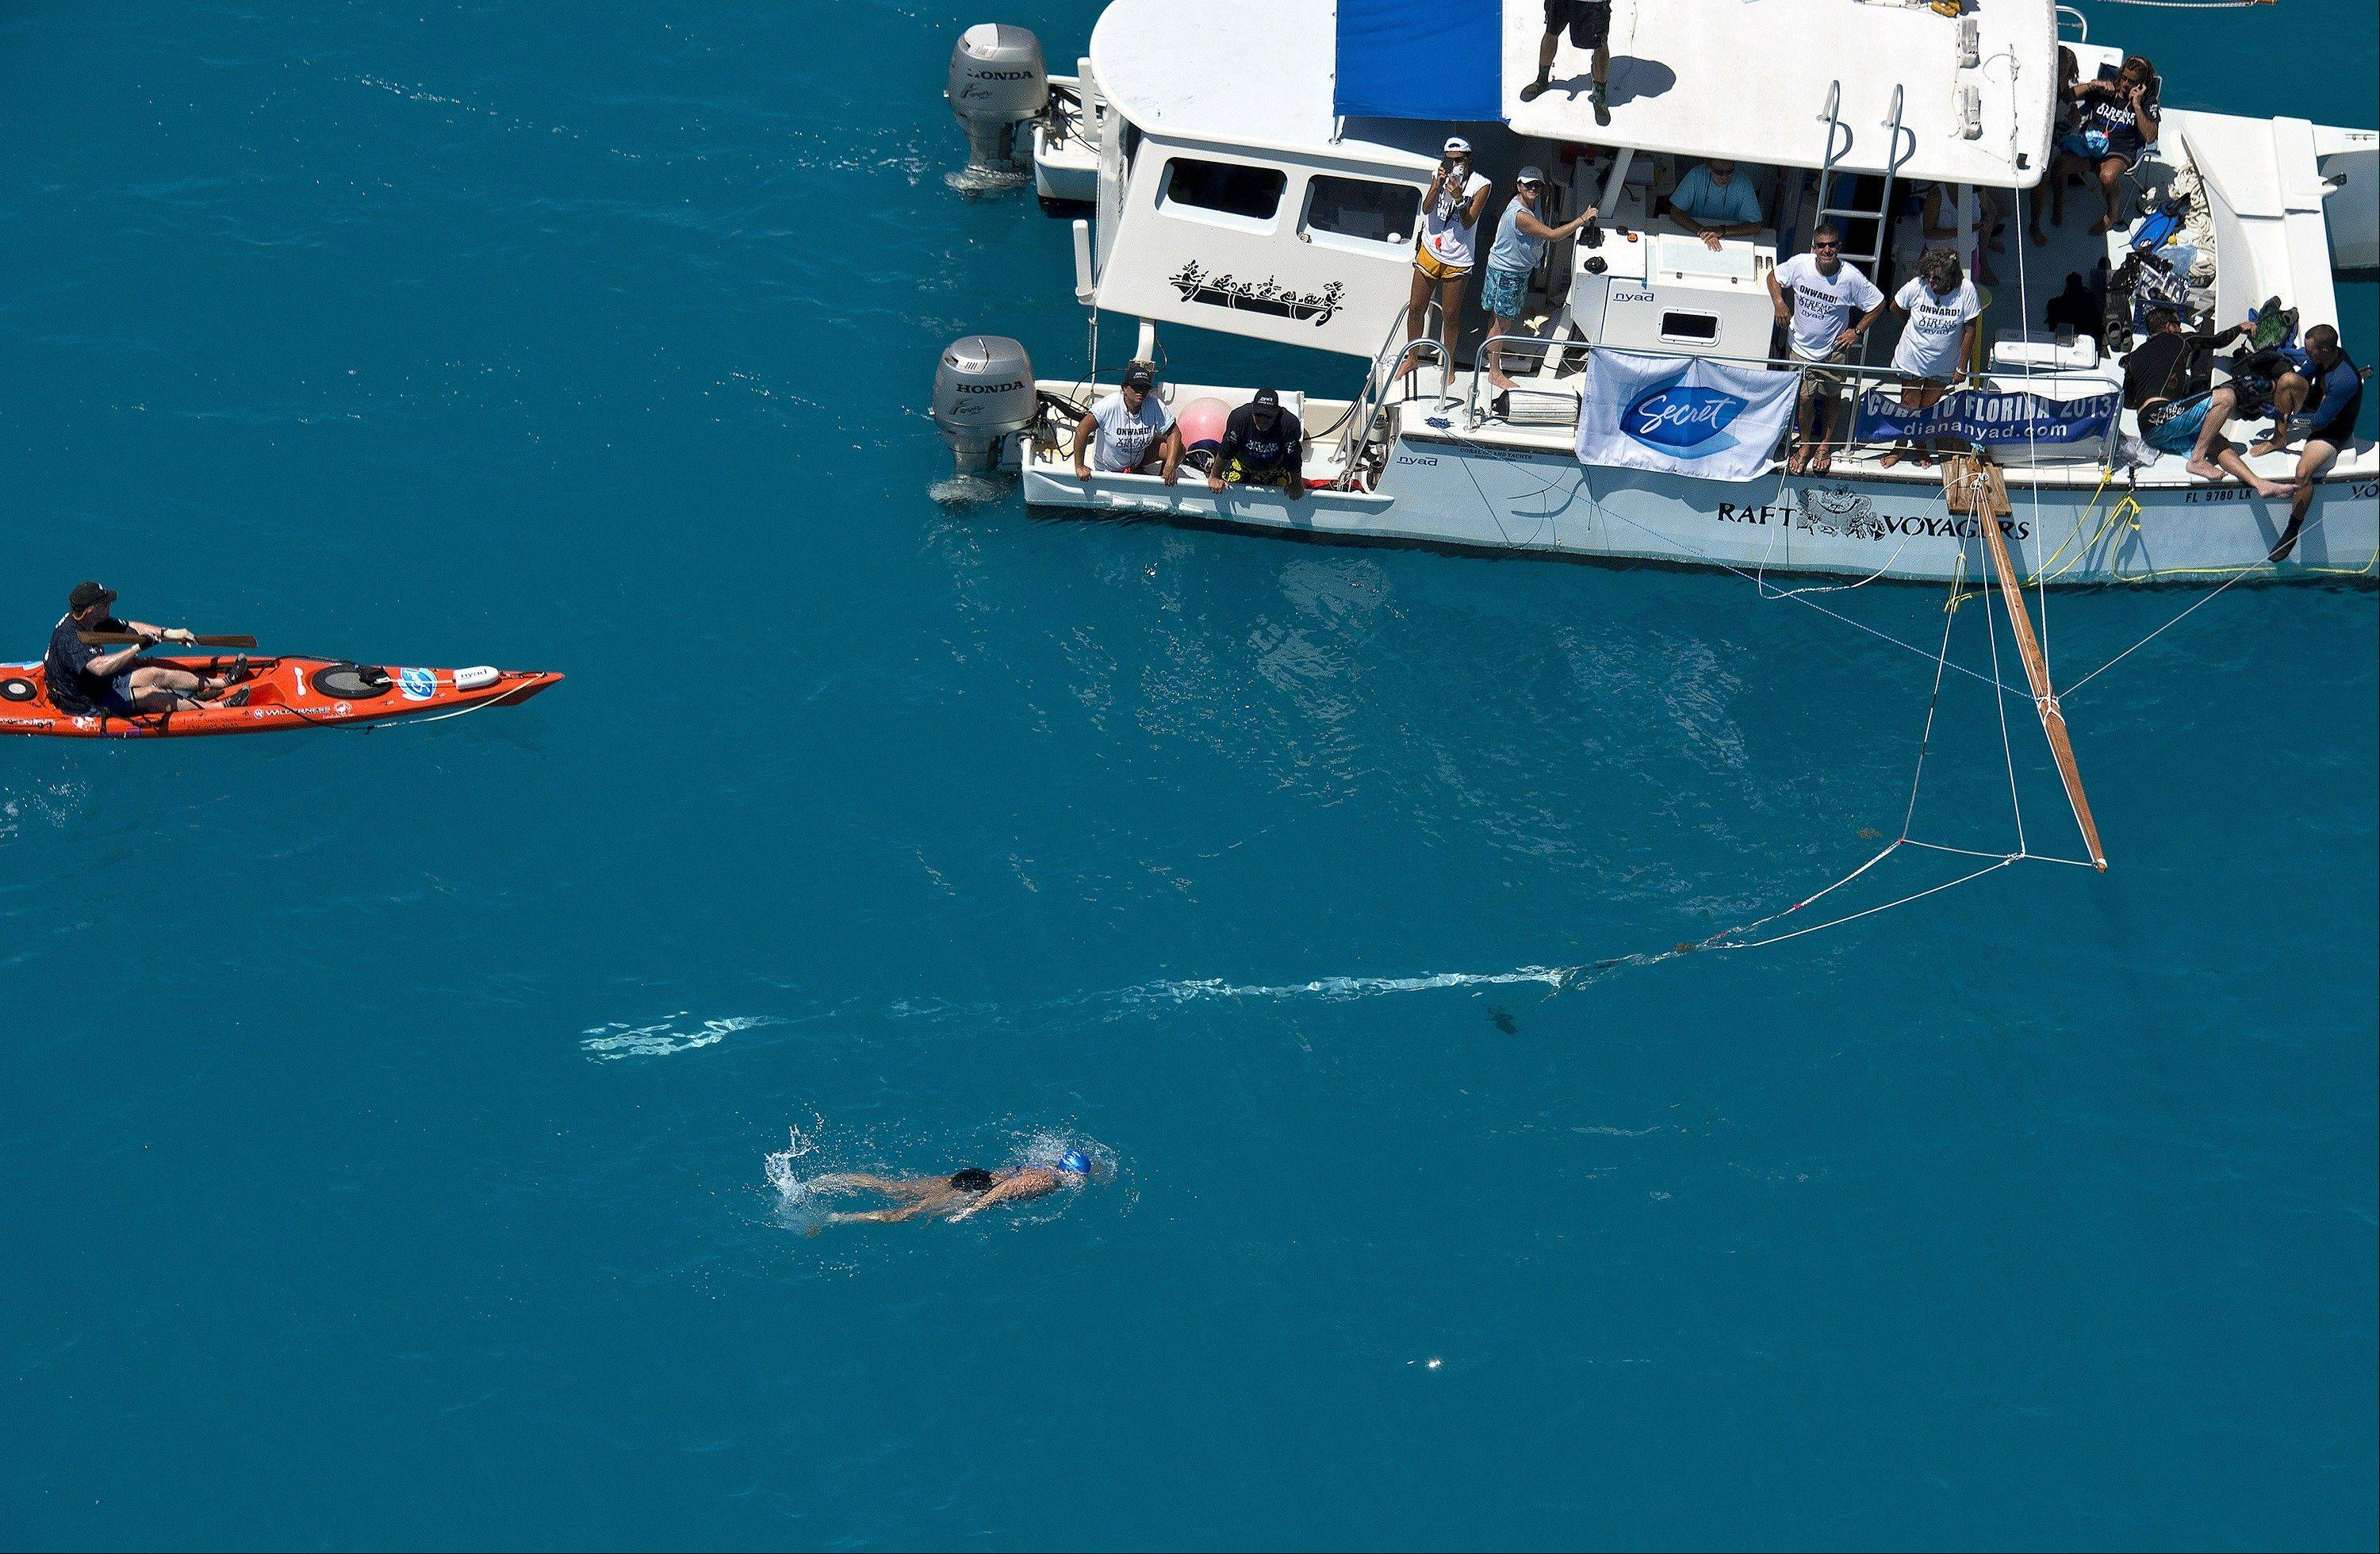 In this photo provided by the Florida Keys News Bureau, Diana Nyad, positioned about two miles off Key West, Fla., Monday, Sept. 2, 2013, swims towards the completion of her approximately 110-mile trek from Cuba to the Florida Keys.